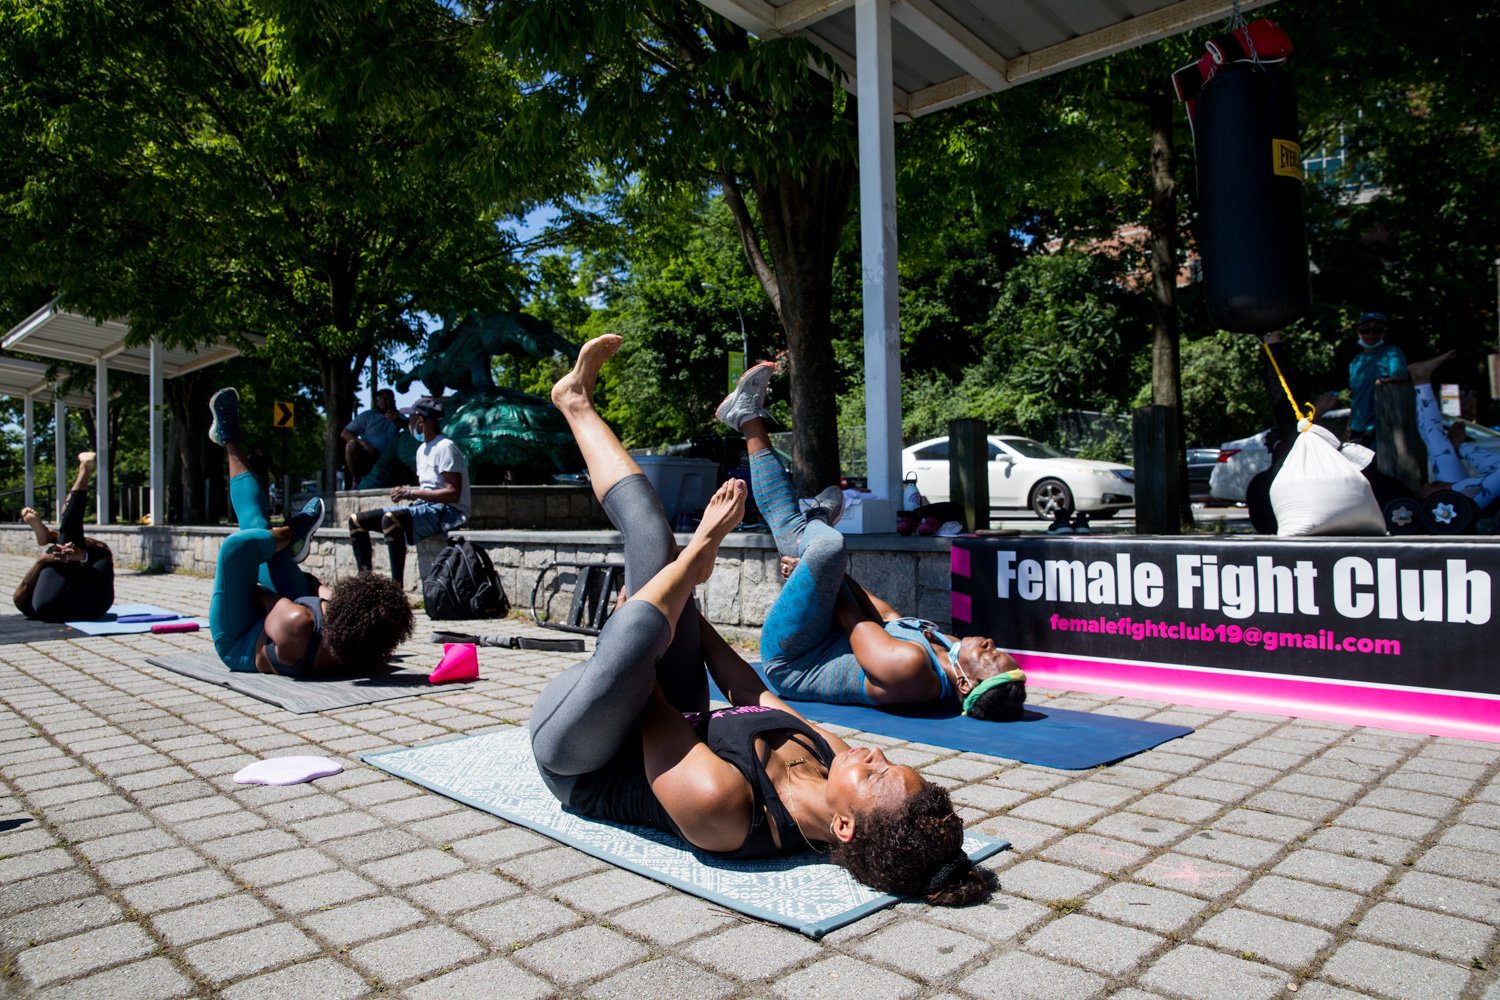 Members of Female Fight Club, a fitness group, cools down with yoga at the end of a workout routine in Van Cortlandt Park. Johanna Edmondson founded the club in the early days of the coronavirus pandemic.